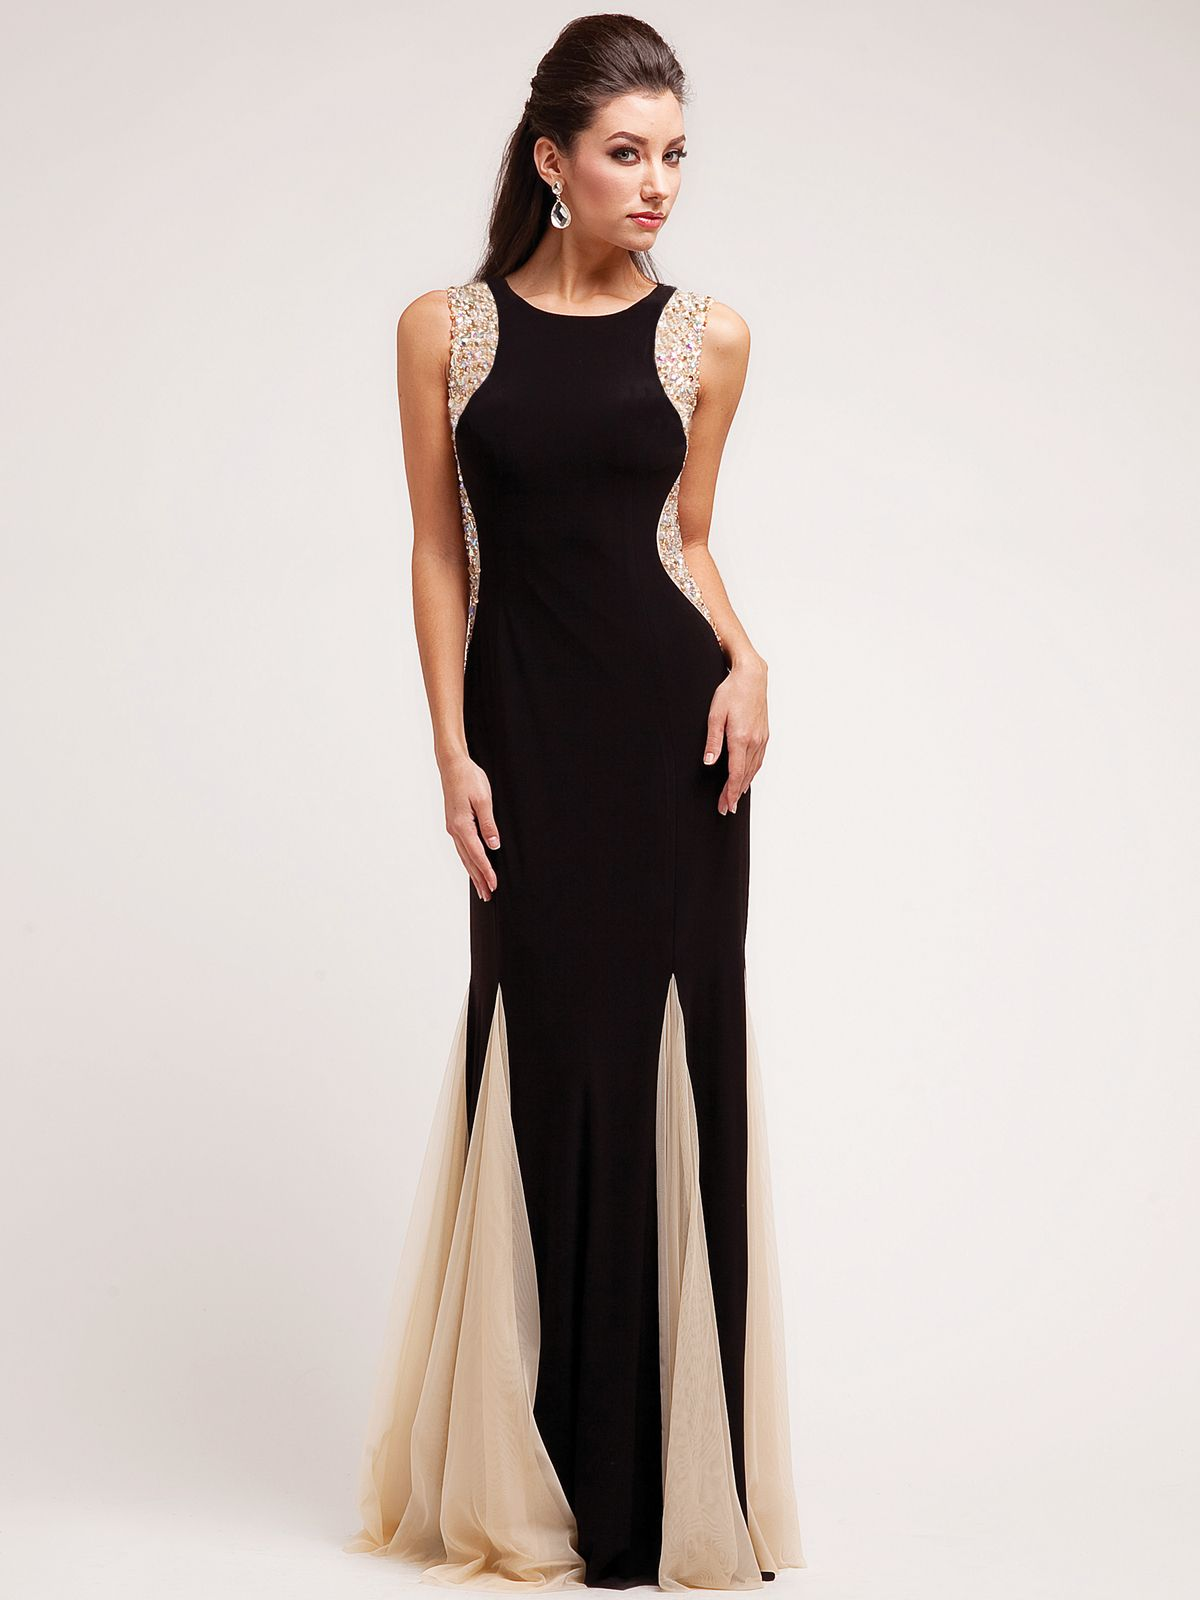 A Black Tie Affair Evening Dress